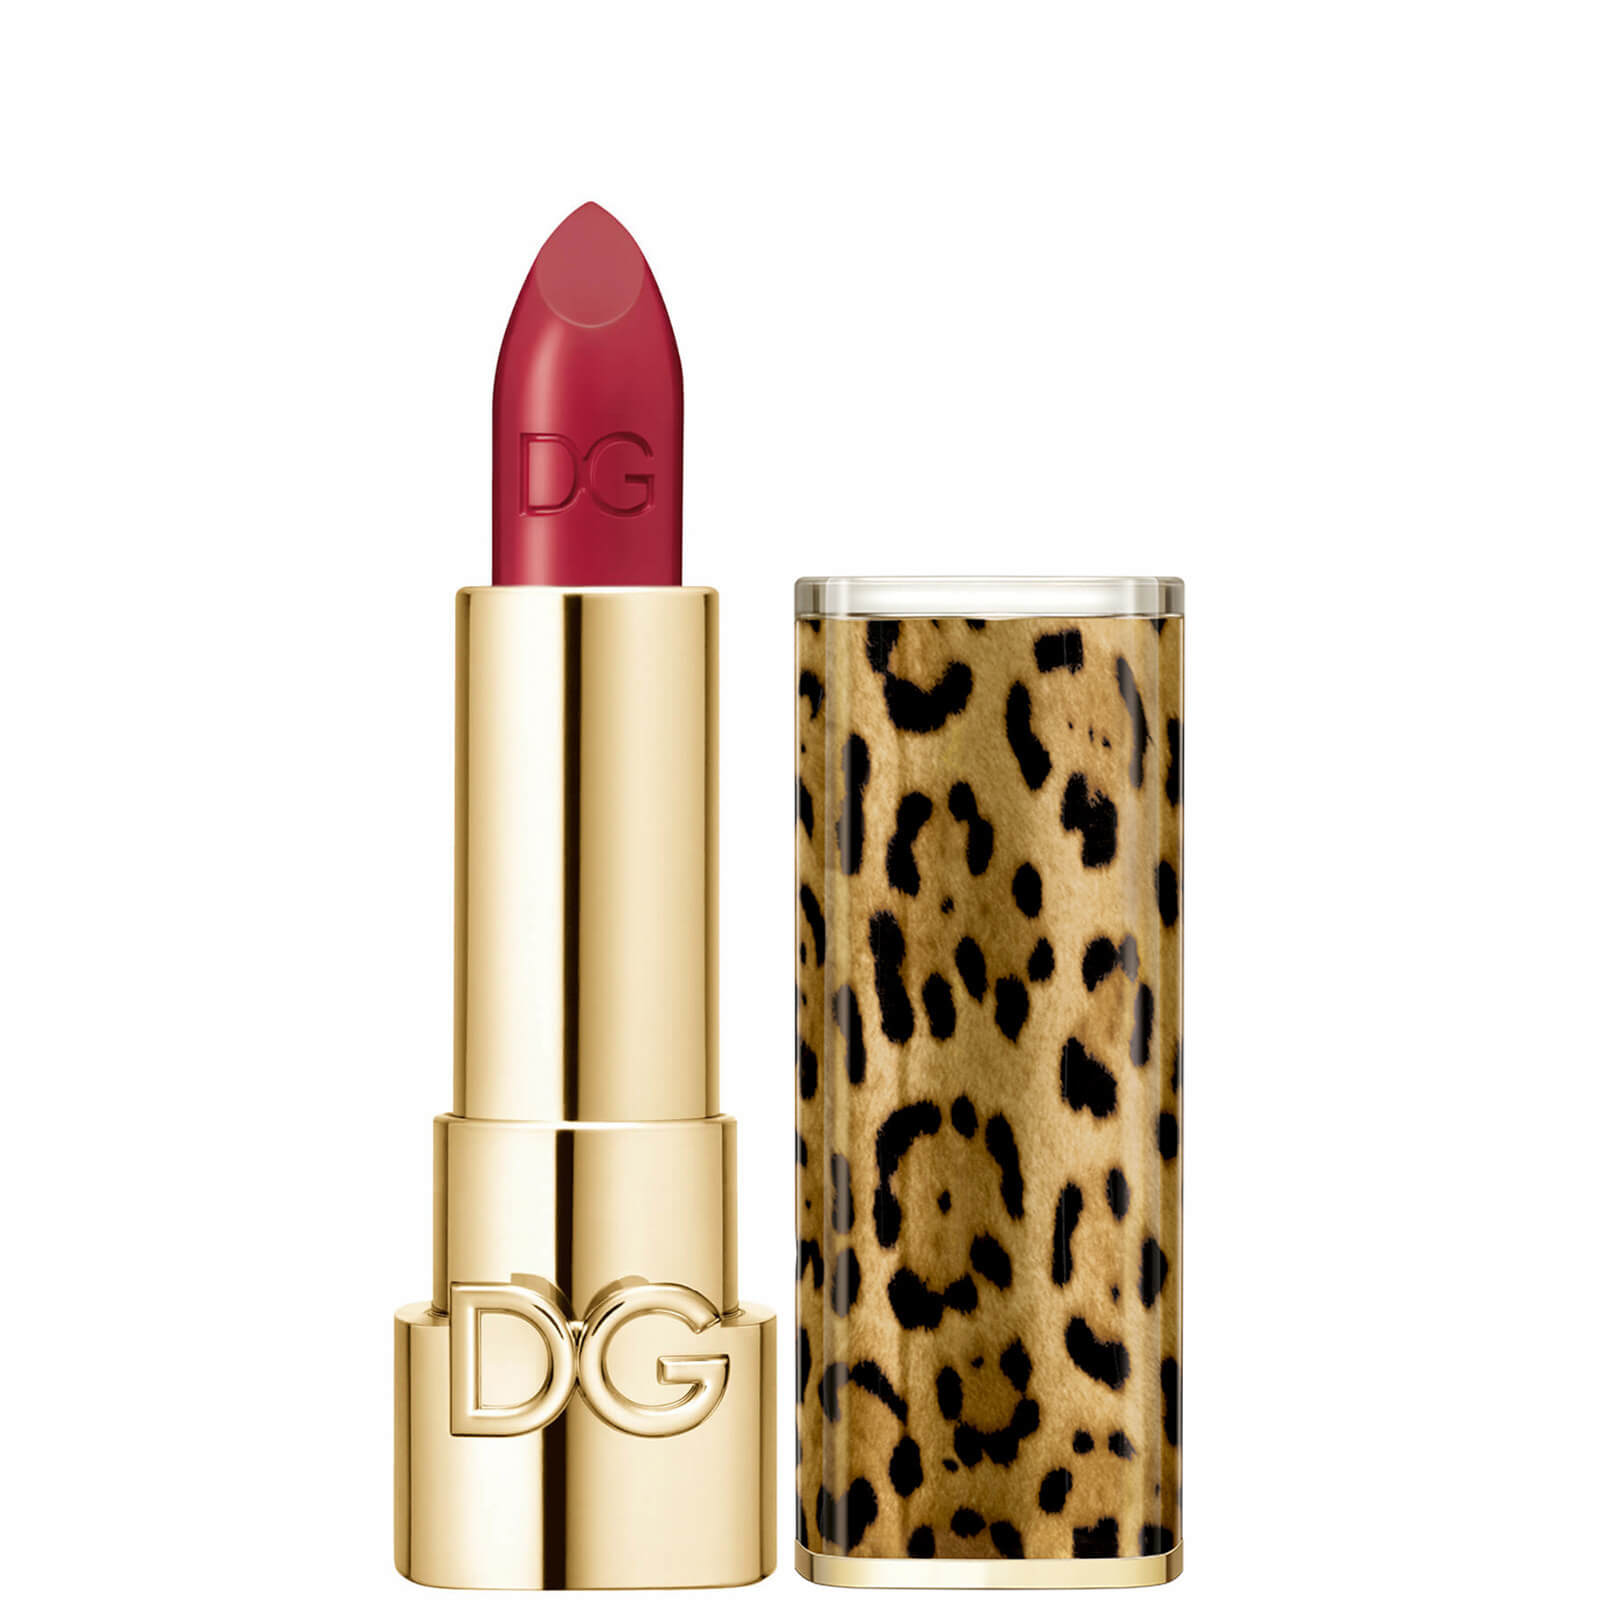 Dolce&Gabbana The Only One Lipstick + Cap (Animalier) (Various Shades) - 640 Amore